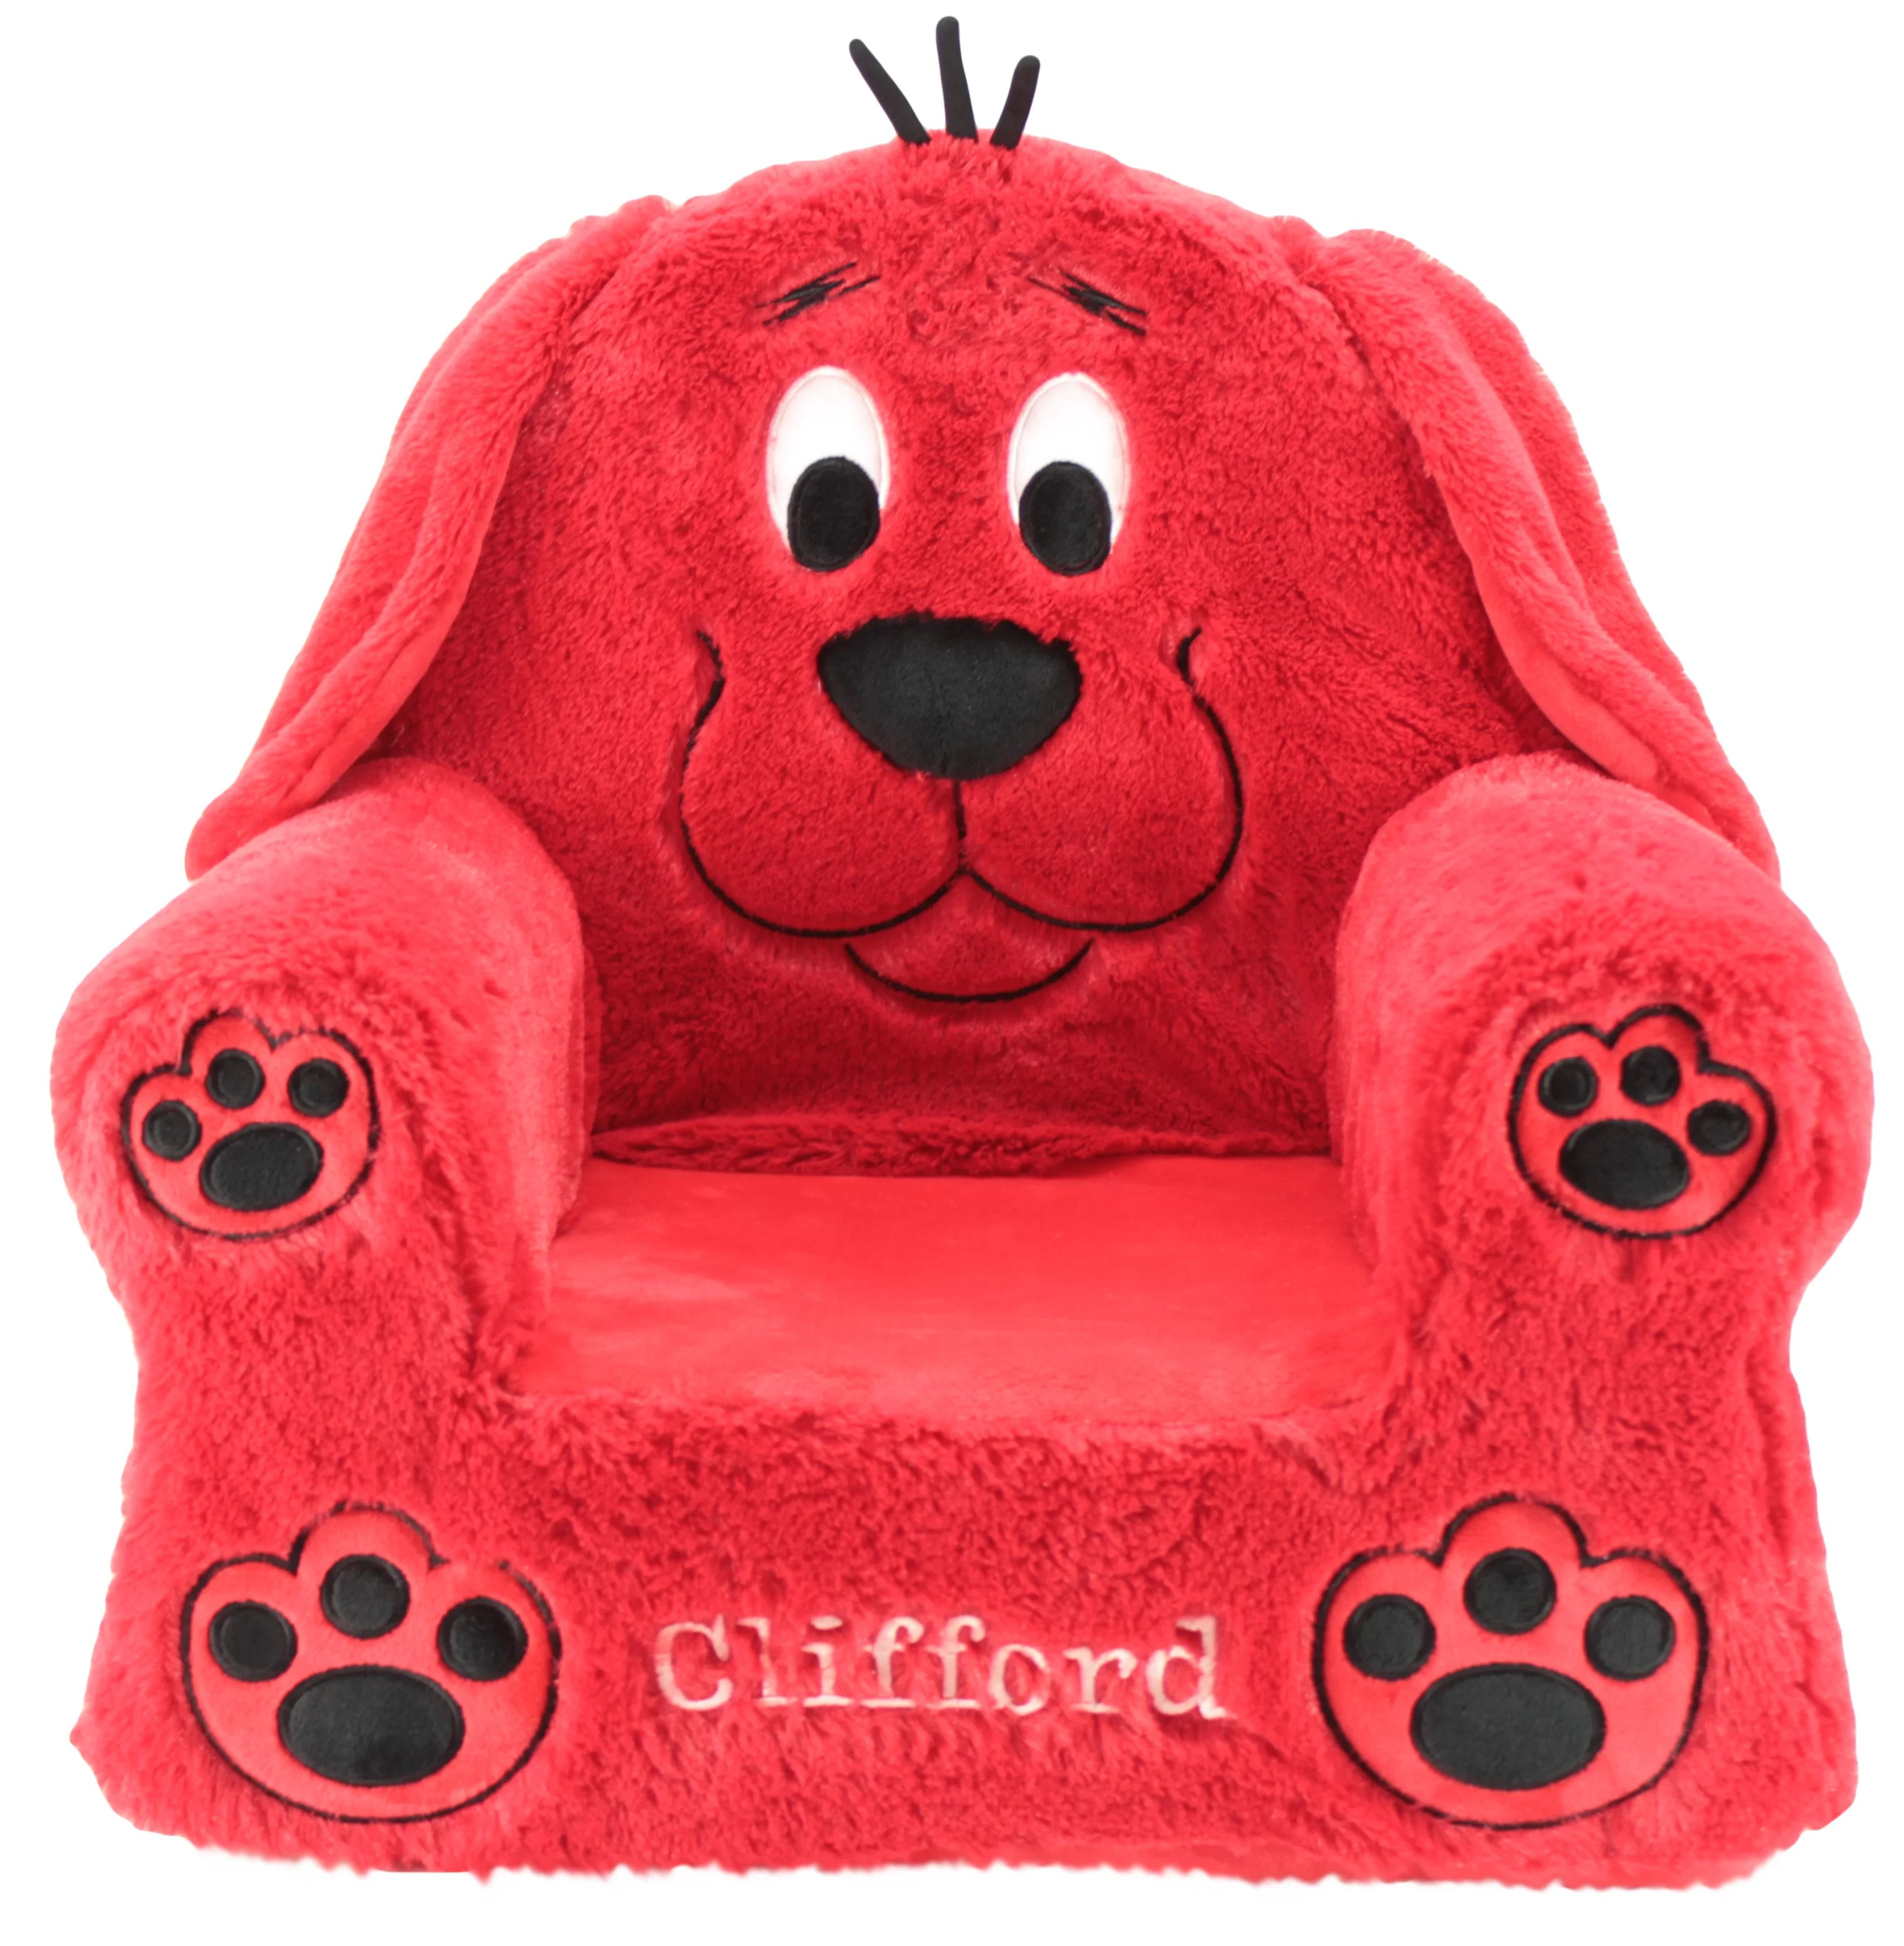 kids plush chairs office chair for lower back pain animal adventure clifford wayfair